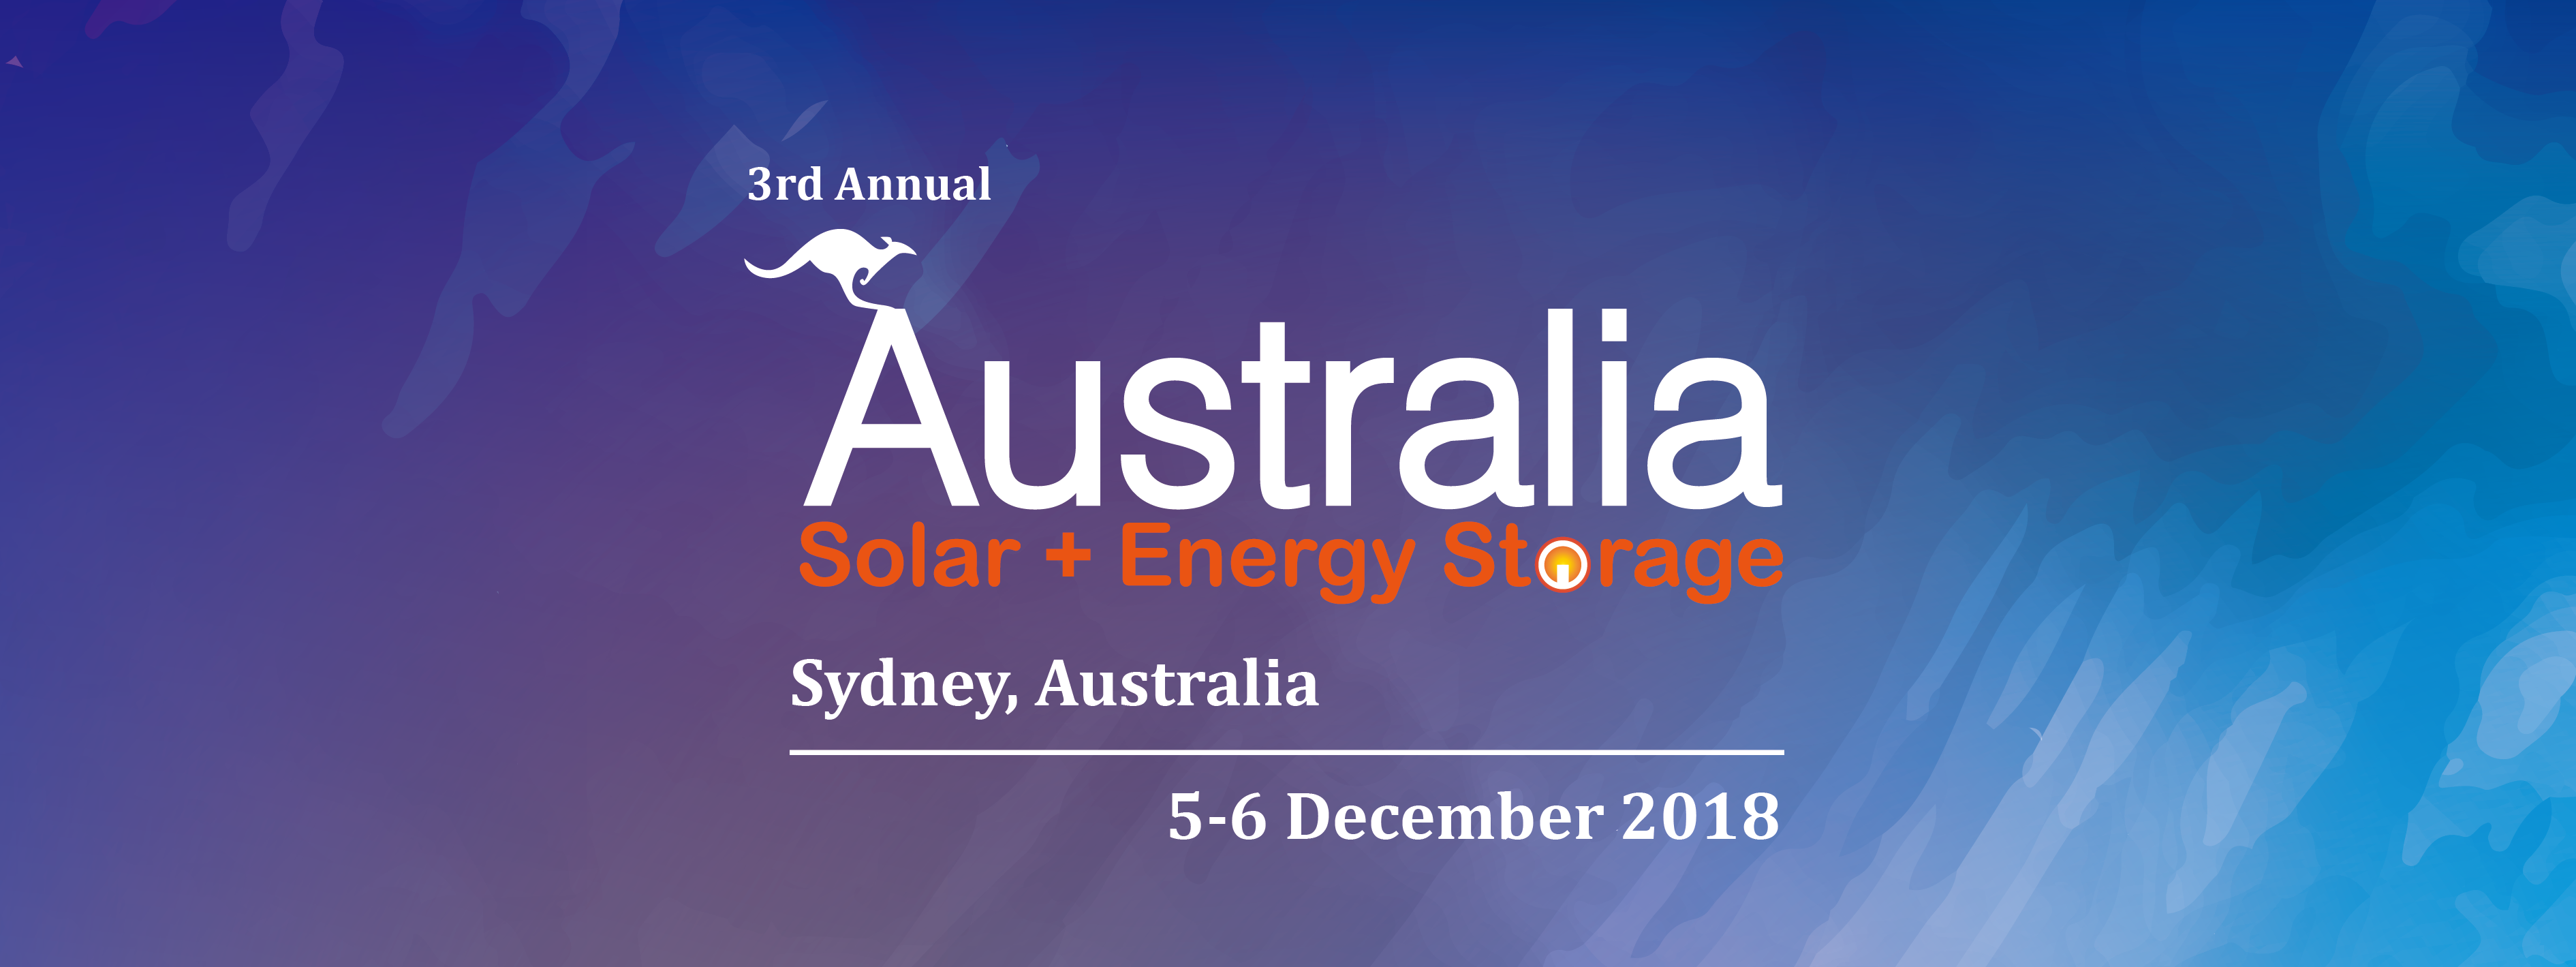 3rd Australia Solar + Energy Storage Congress & Expo 2018